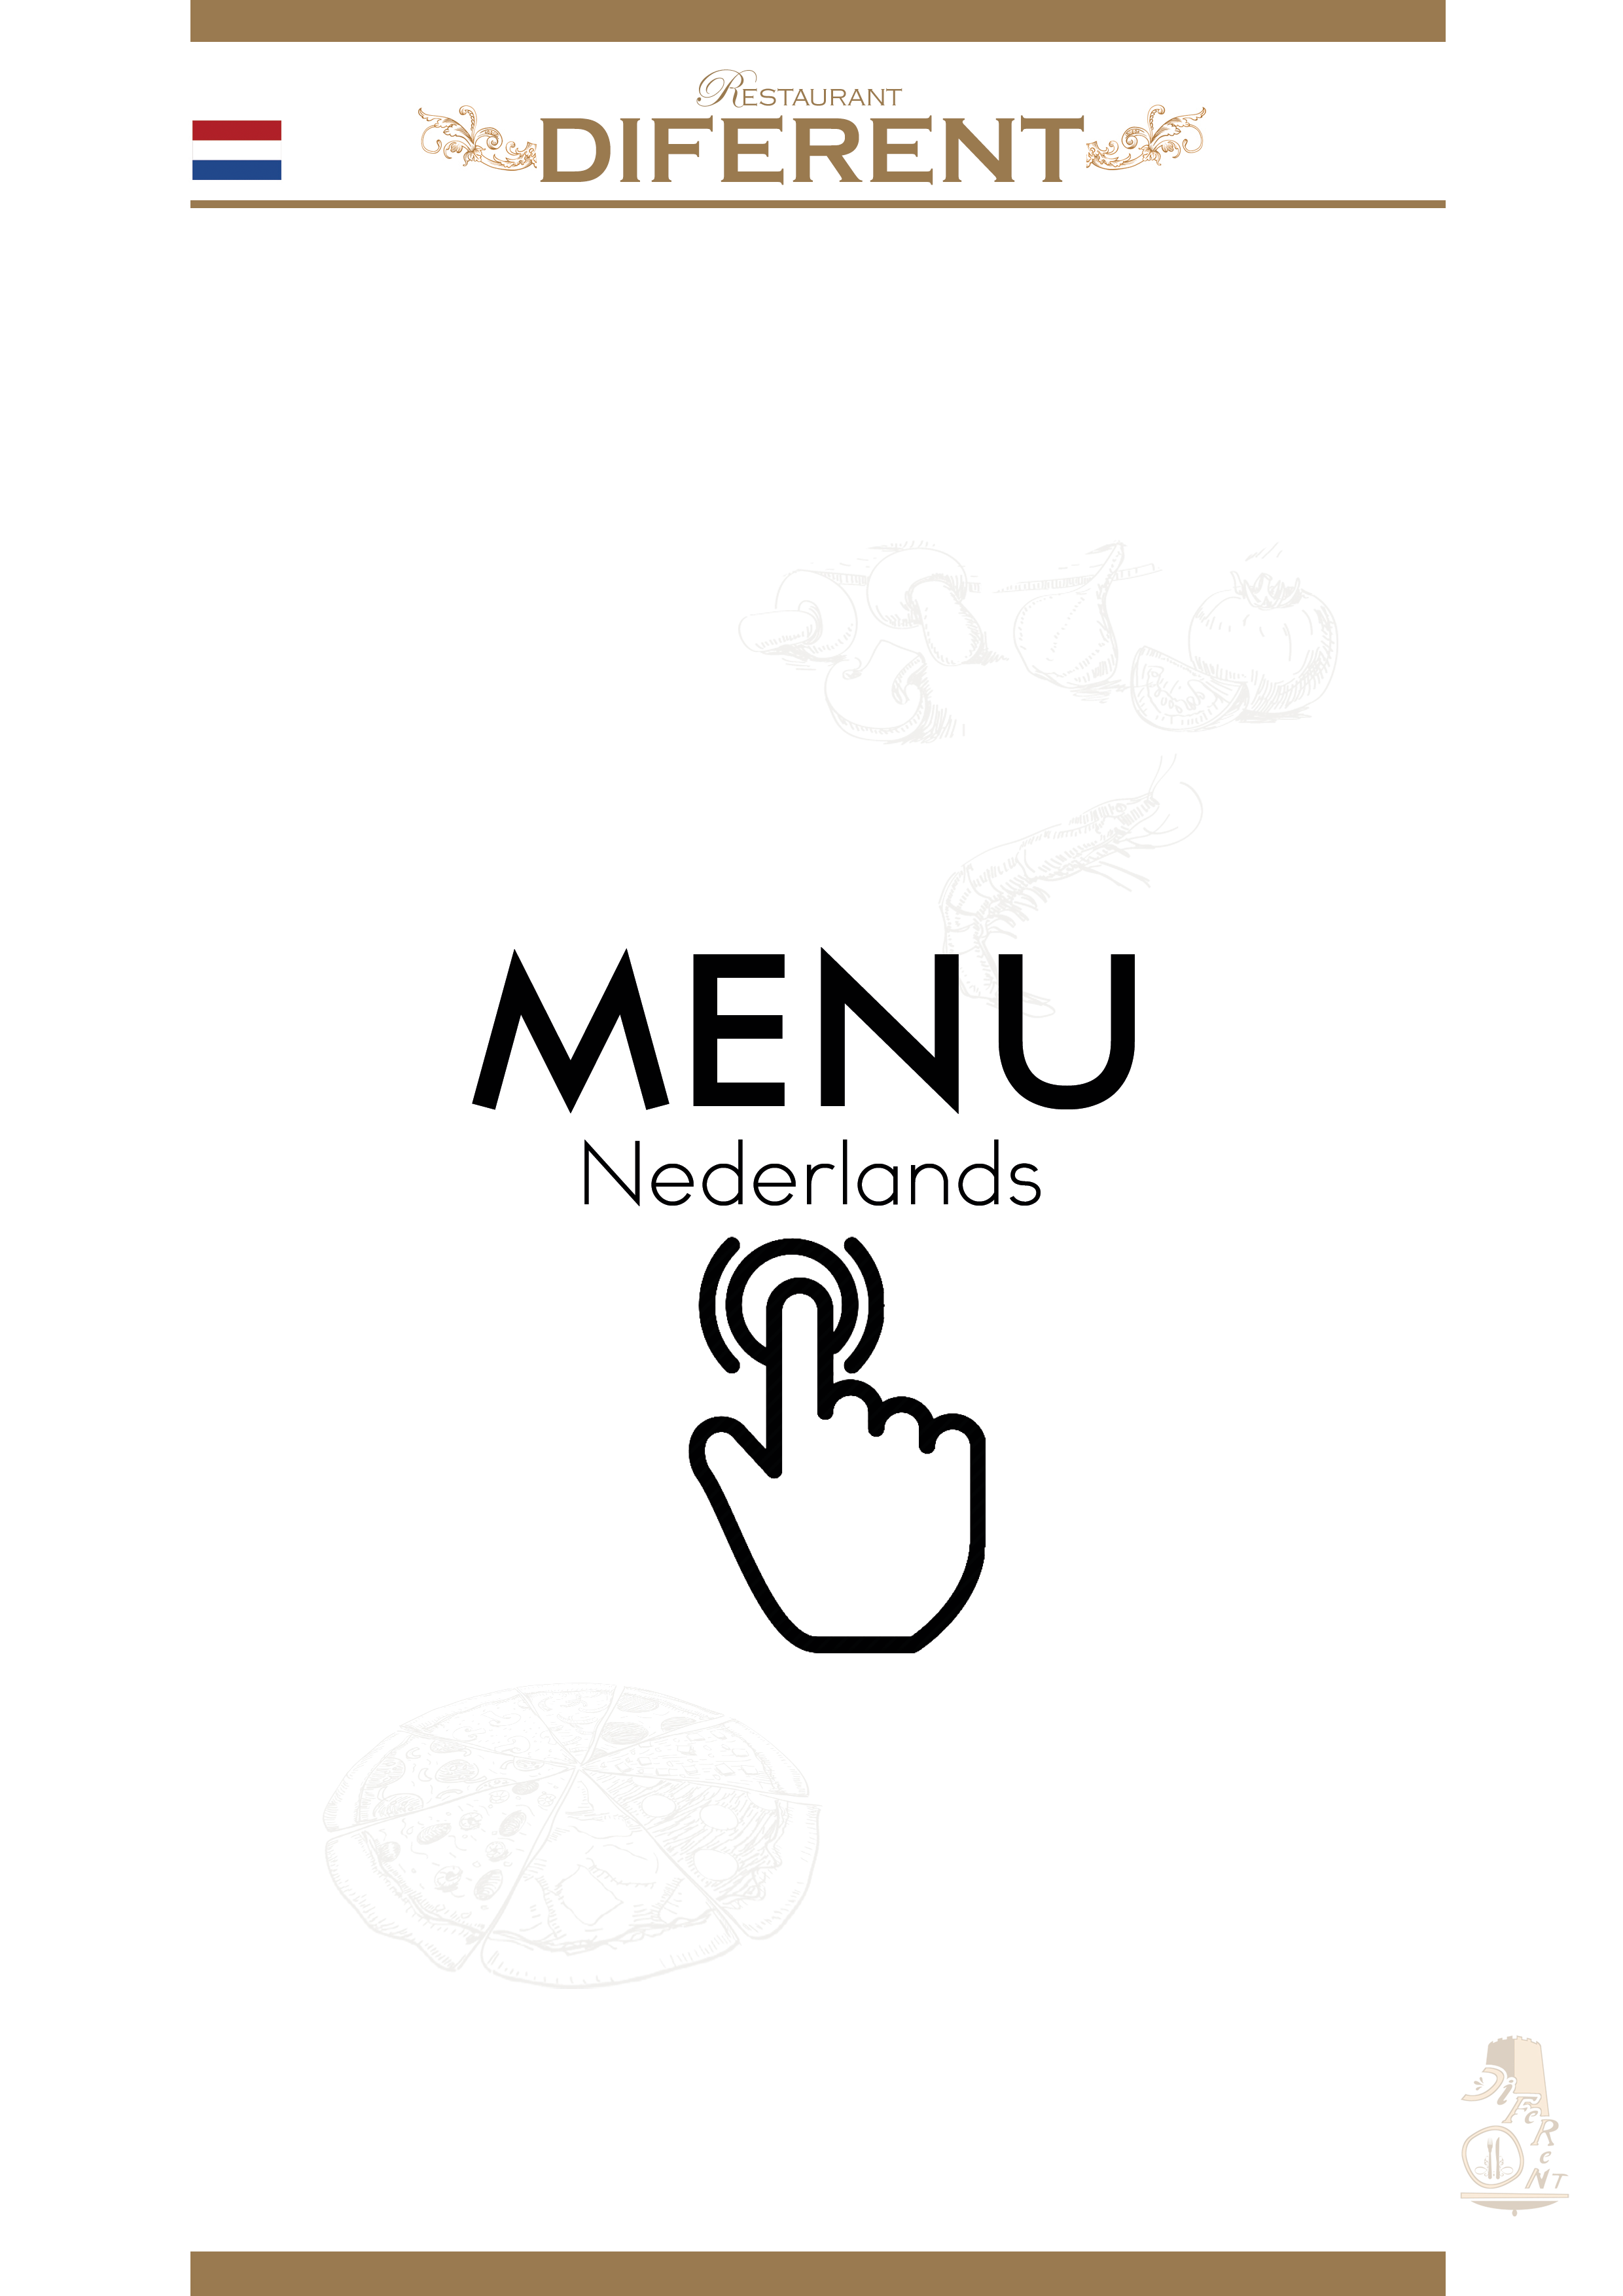 diferent_menu_NL_no_prices